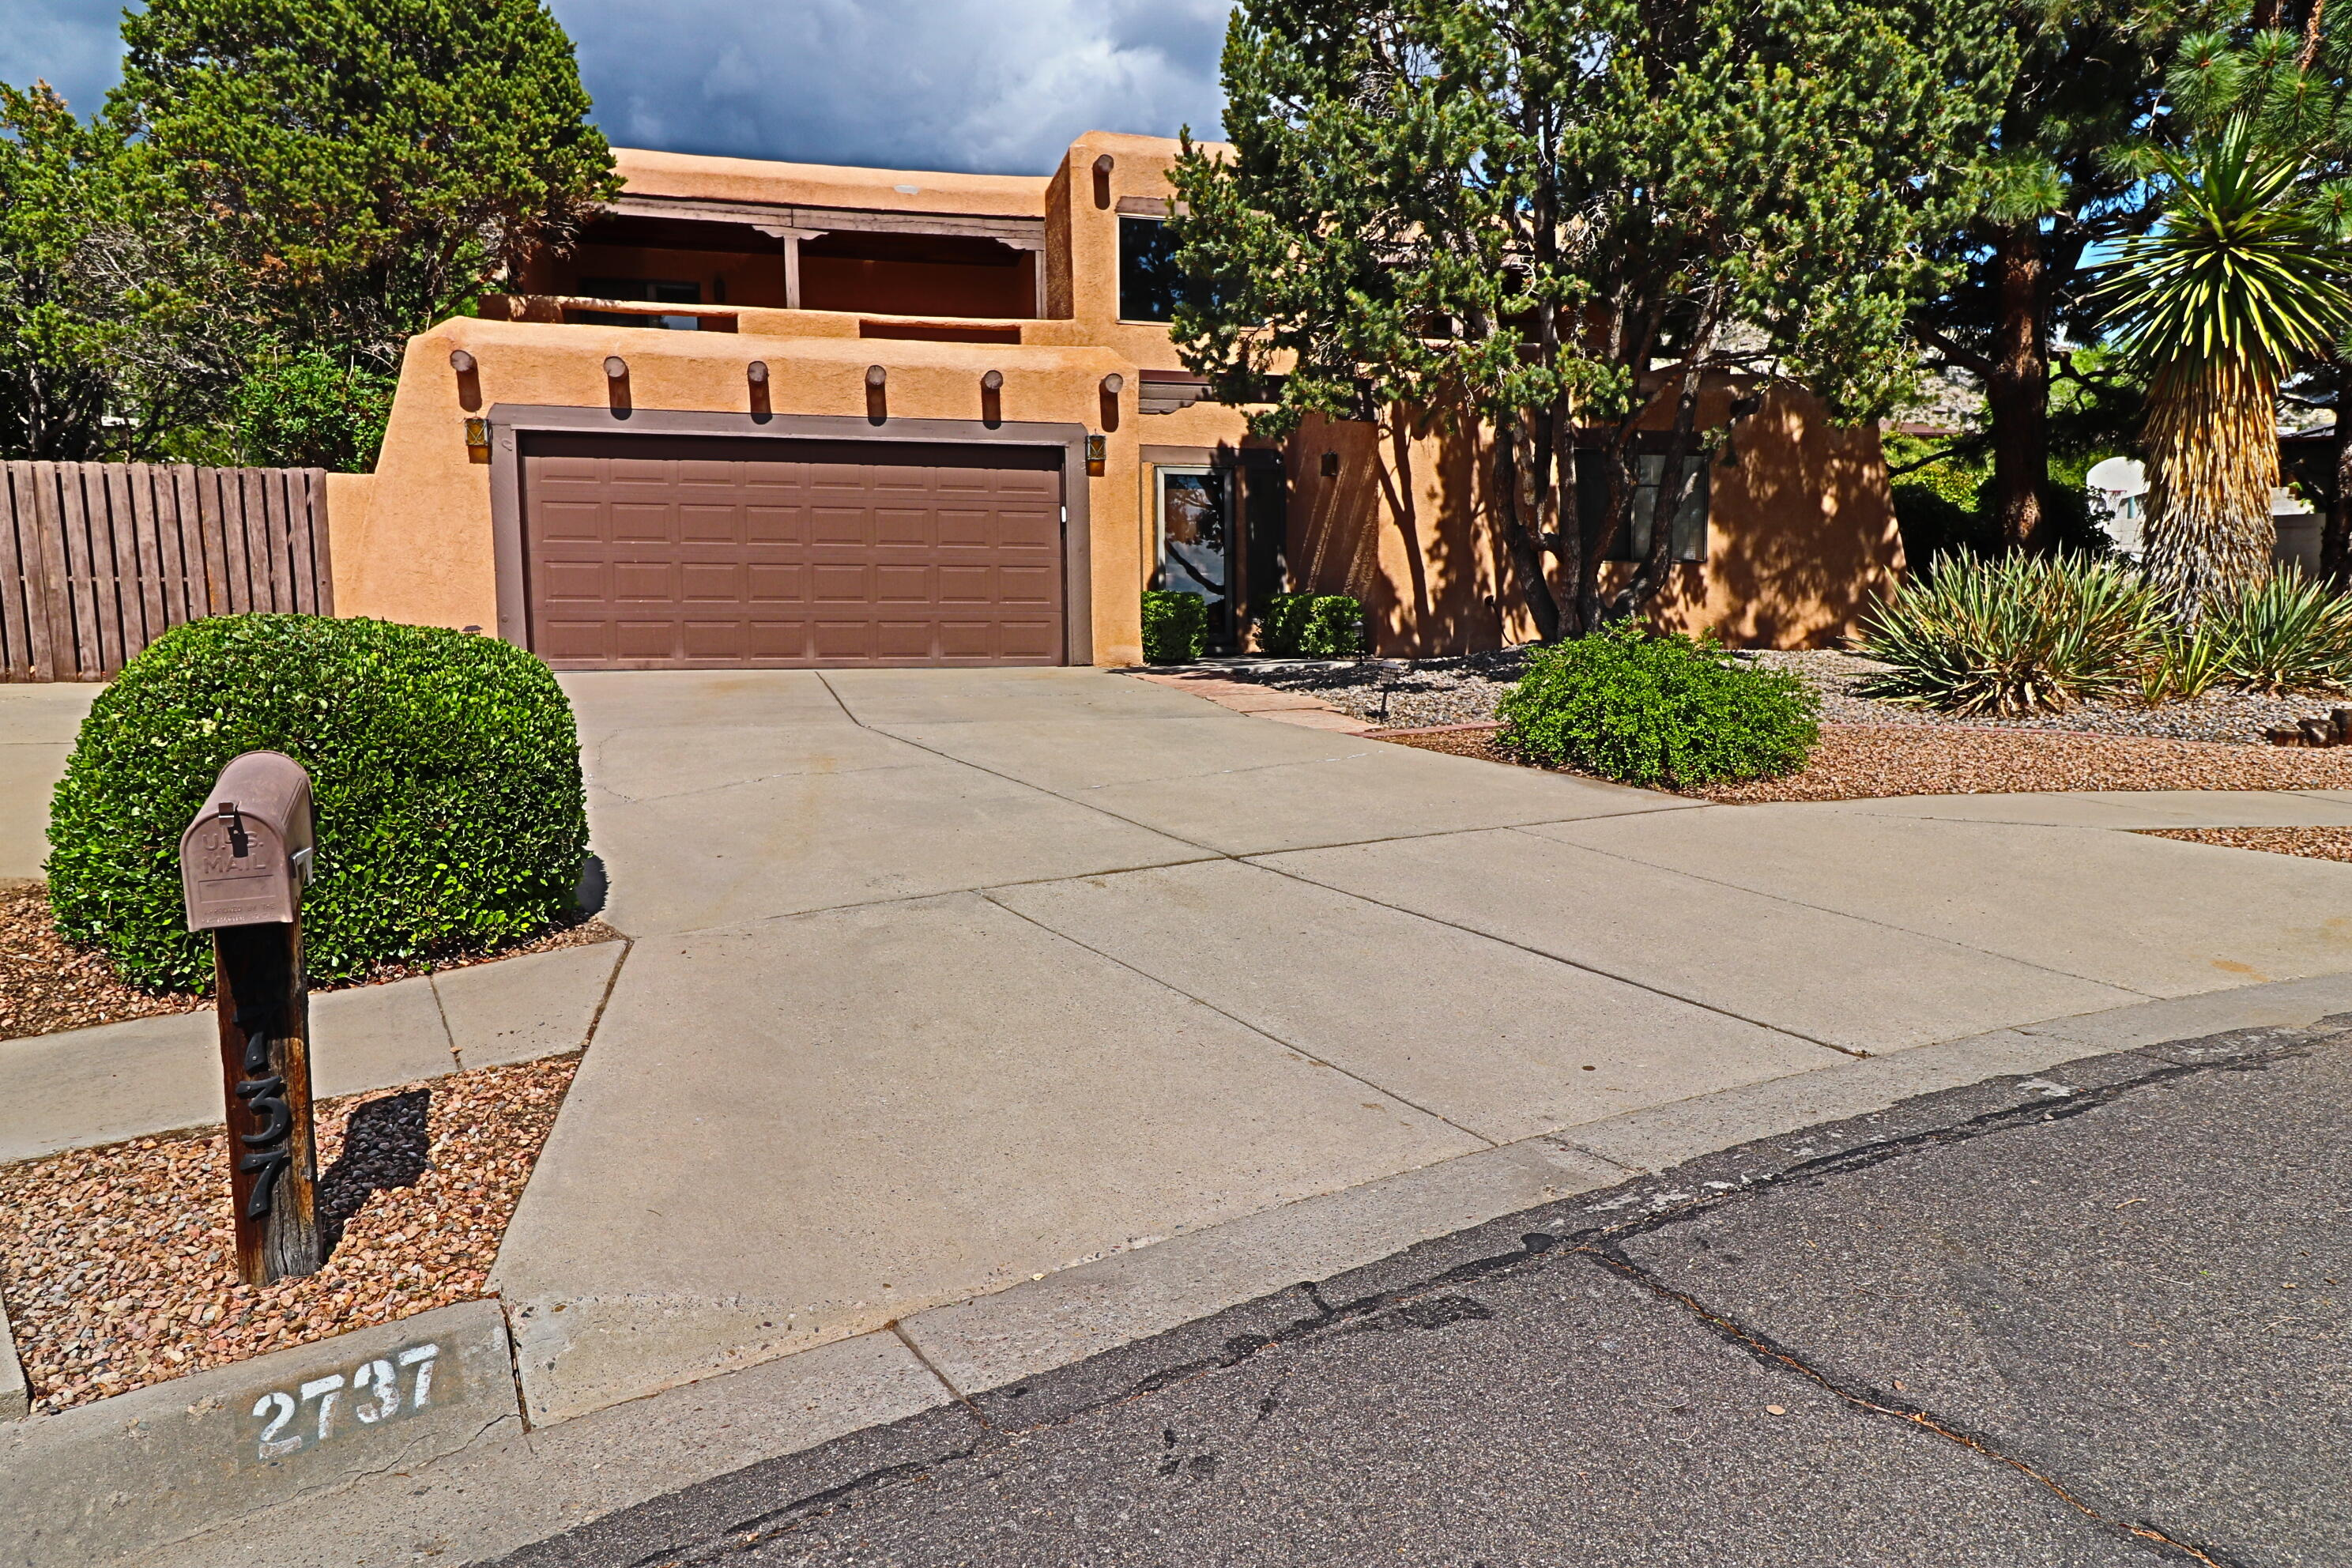 4 bedroom Custom home located in foothills on a large cul-de-sac lot with Mossman gunite pool with deep end for diving* Observe the pool, large backyard, & views east from the covered deck*Also enjoy sunsets & vistas west from the 2 front cov'd balconies off the MBR and Great room*There is also a den or office with wood floors off the kitchen & a formal dining room downstairs*Great Room has wet bar & Kiva wood-burning fireplace*Two furnaces and programmable Breezeair coolers, IB roof, some new windows, & dishwasher are some of the updates*Solid wood interior doors, 3 walk-in closets, and brand New Carpet!!